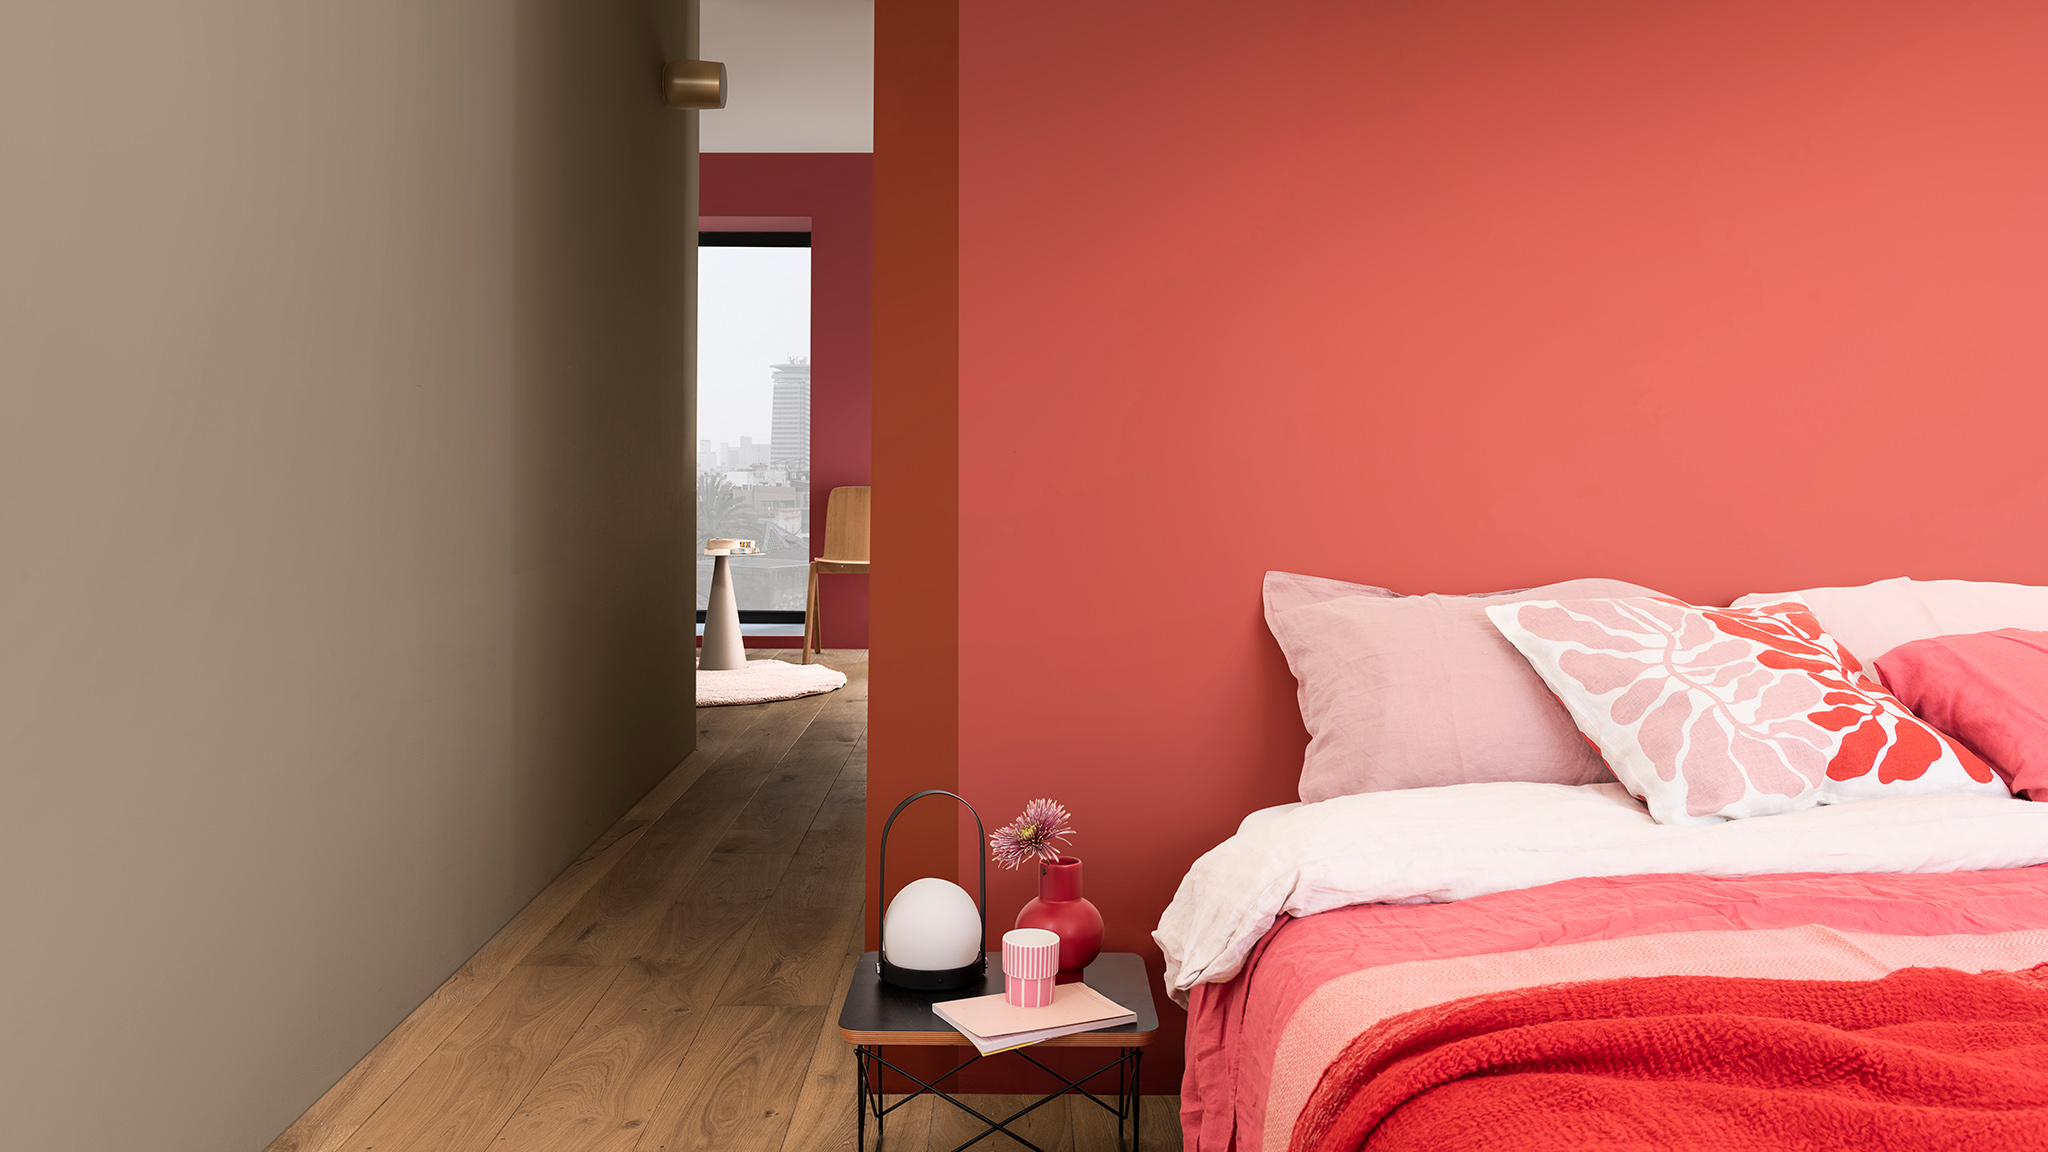 Dulux_CF21_Color_of_2021_Expressive_colors_global_2